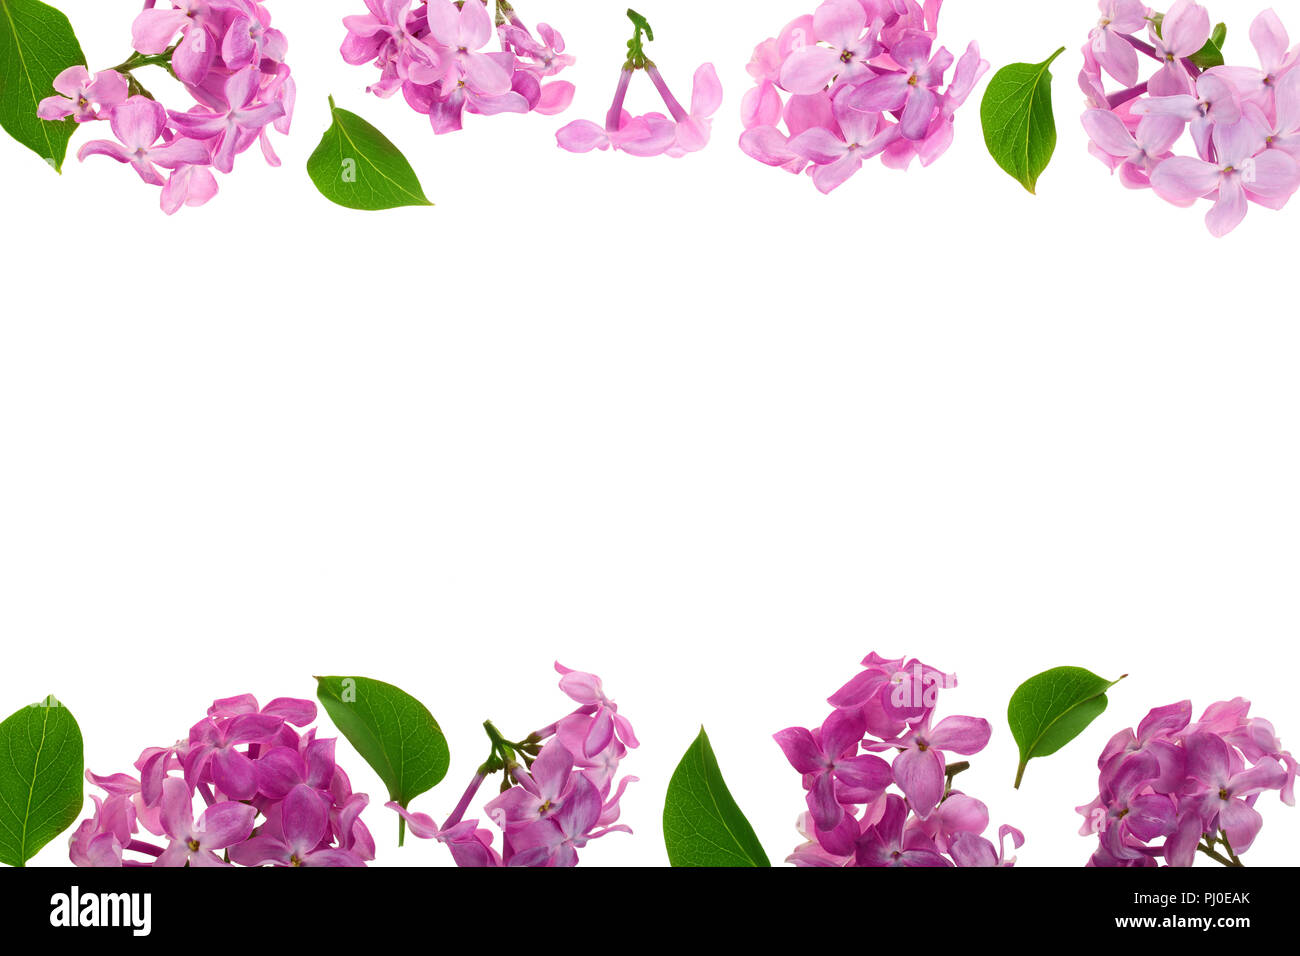 Flower Frame Collection Pink Purple Stock Photos Flower Frame